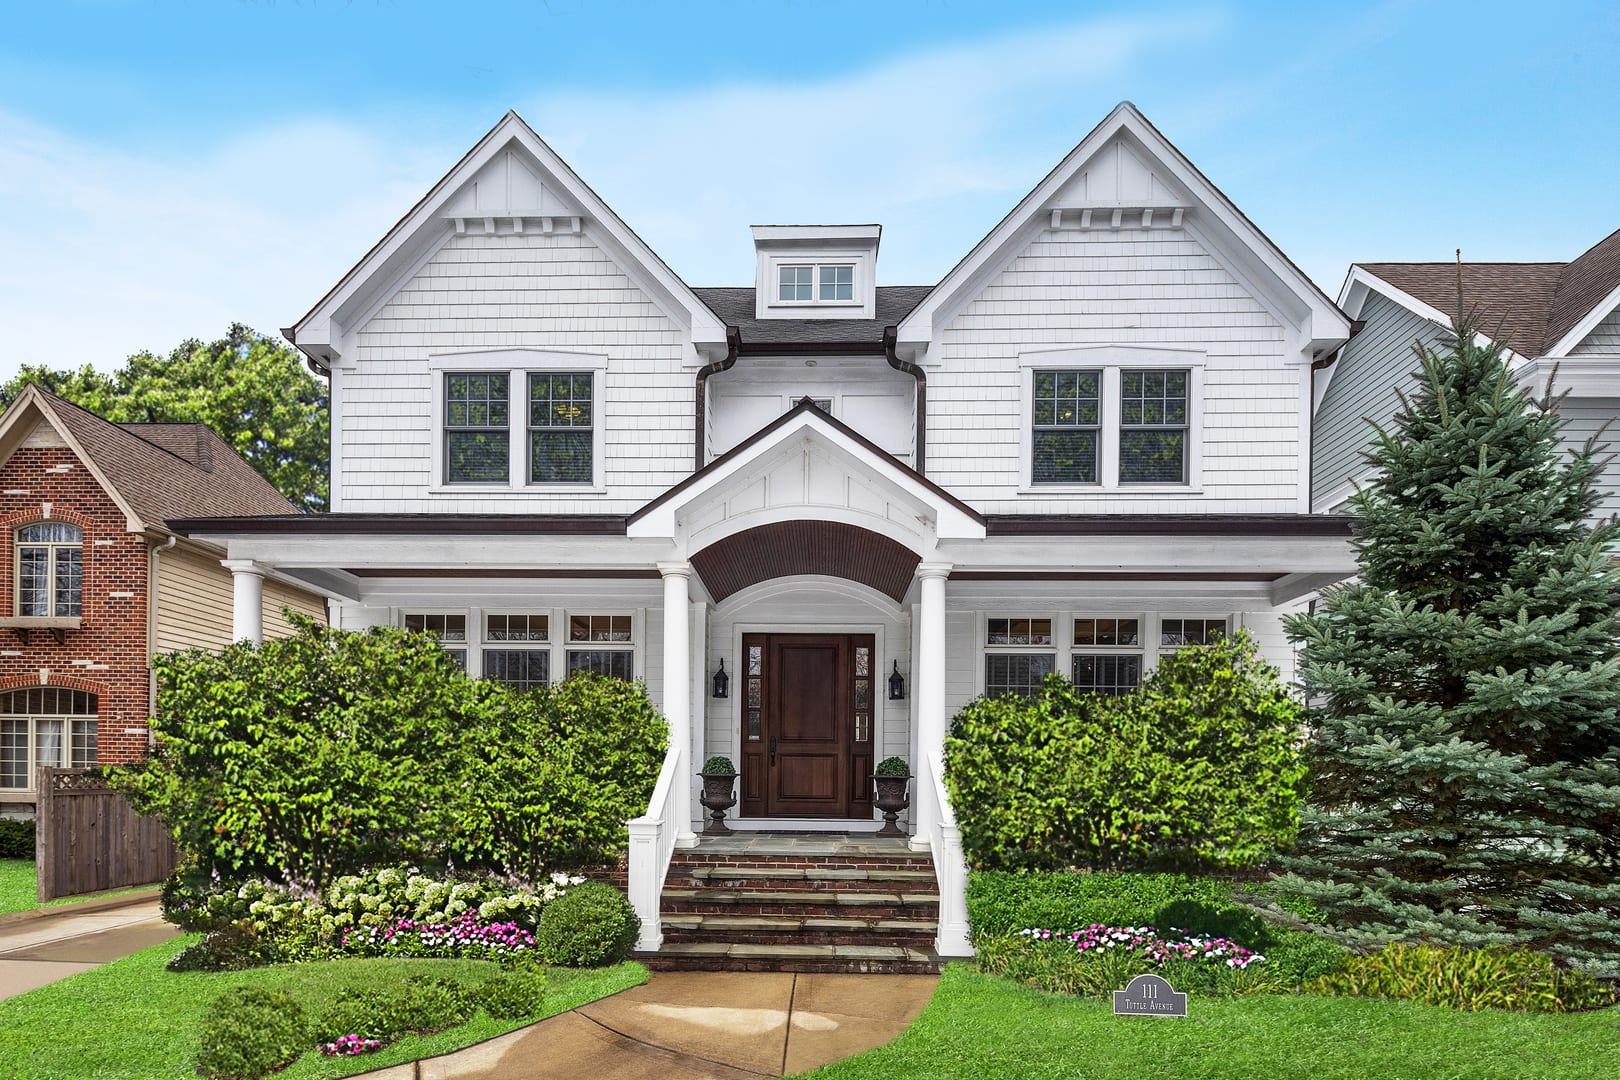 This Charming Home is Picture Perfect